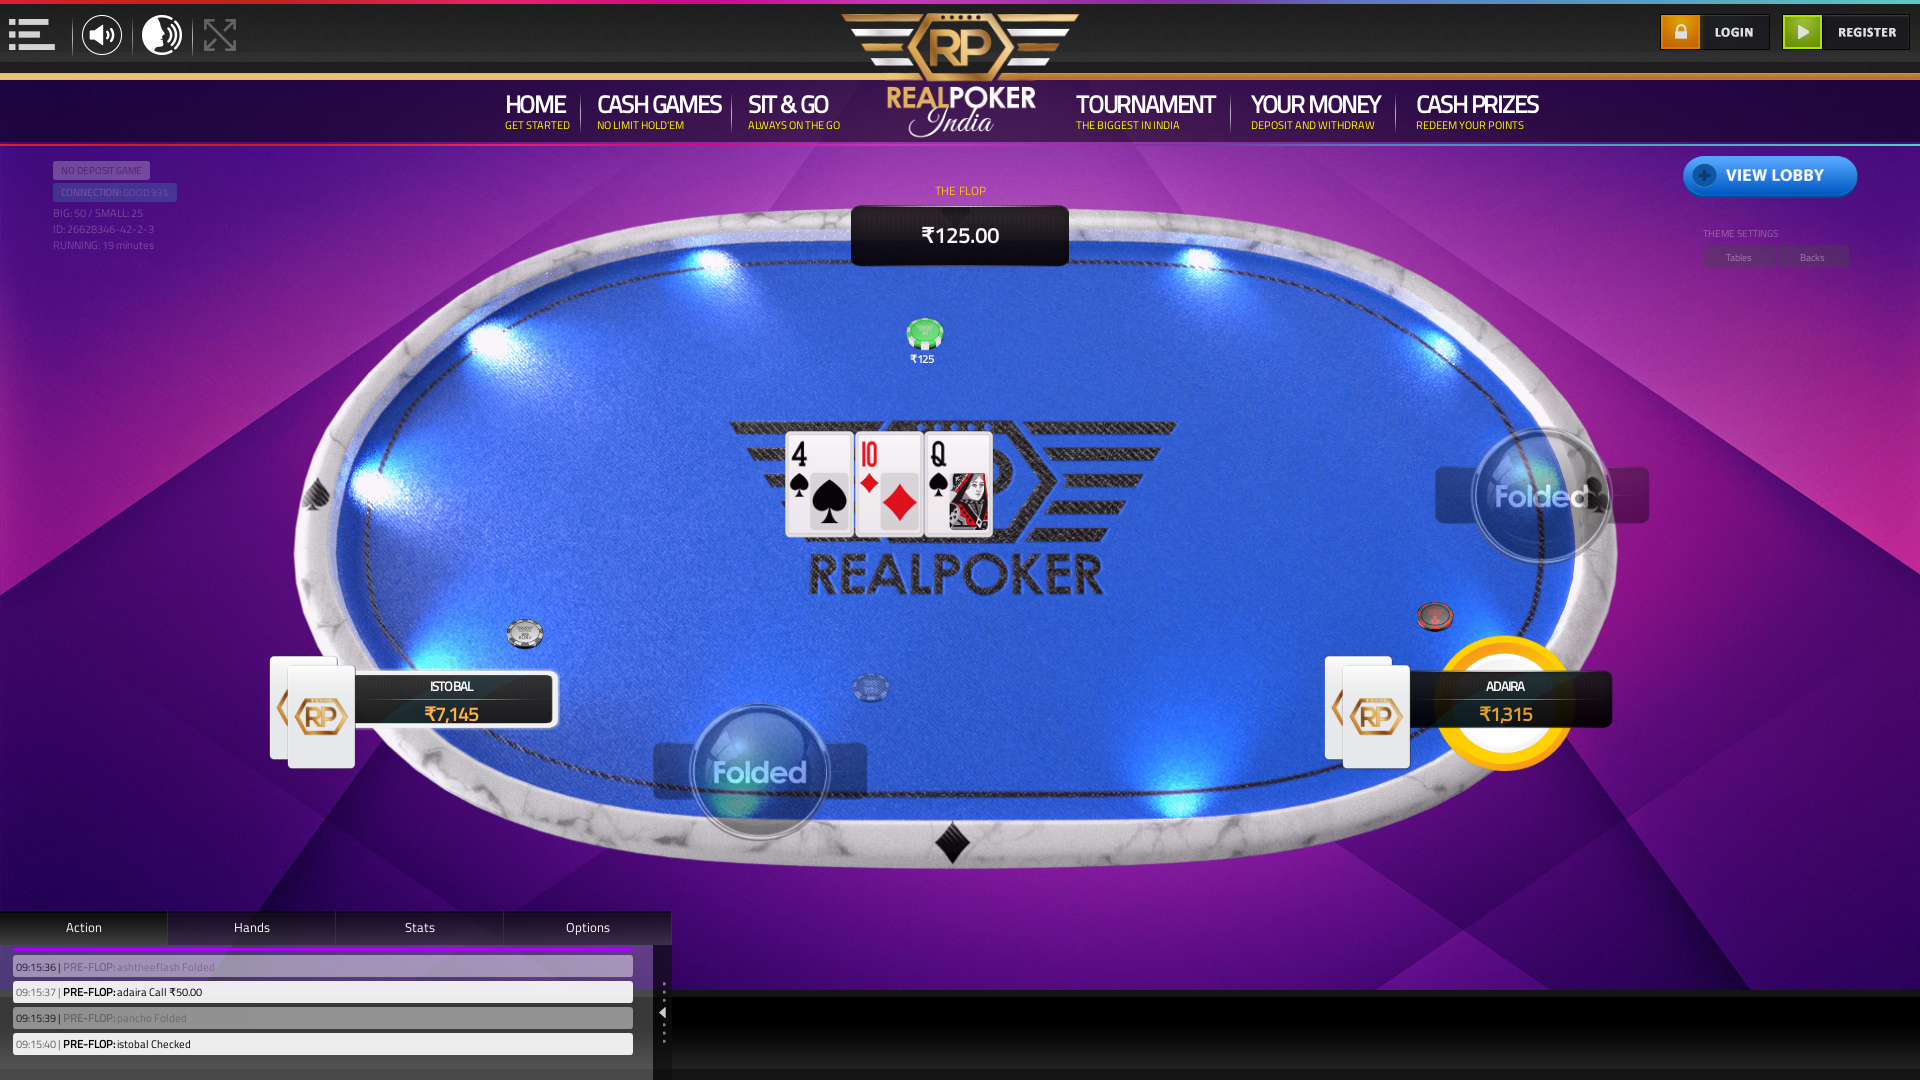 indian poker on a 10 player table in the 19th minute